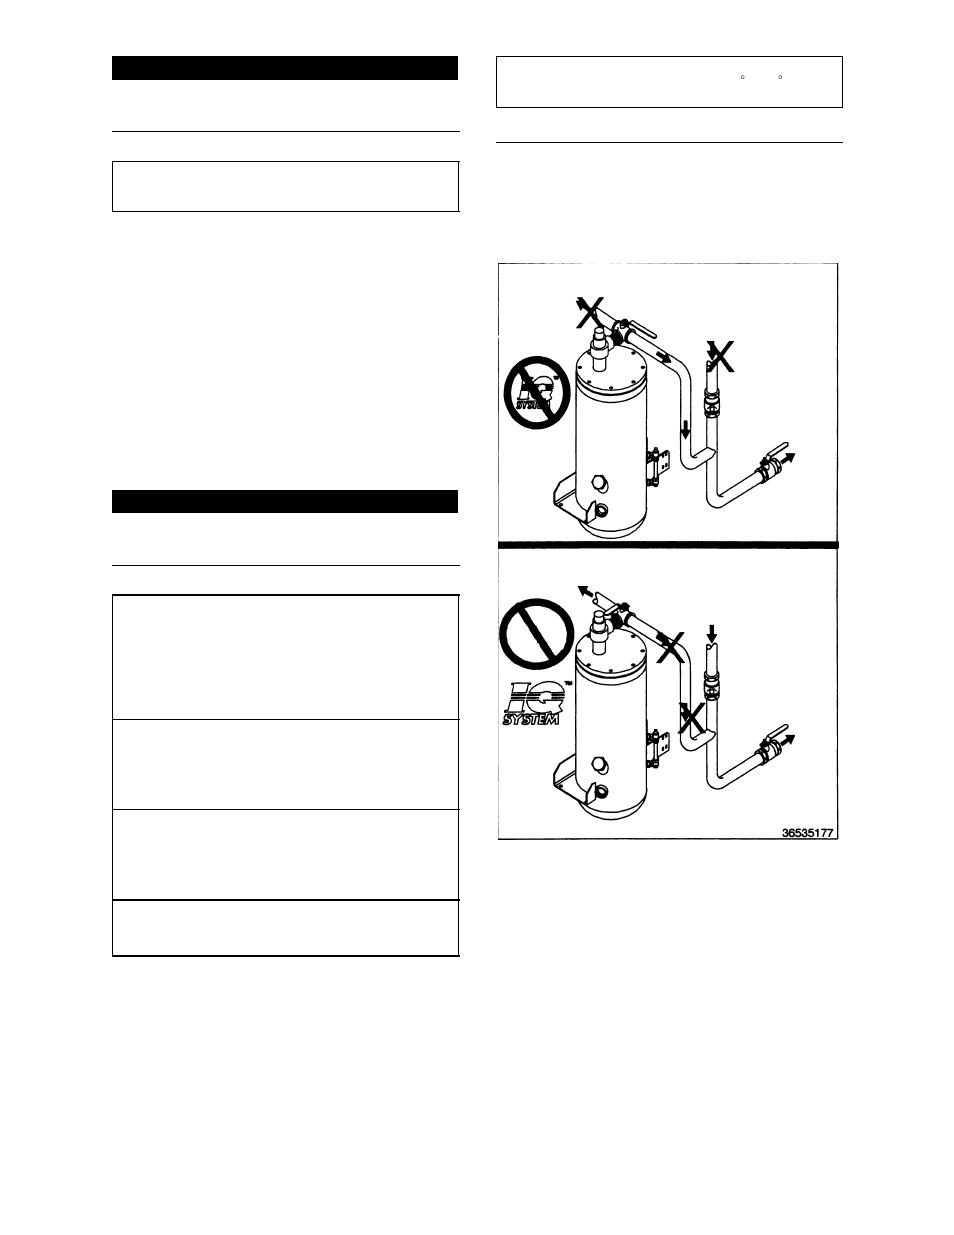 Options | Ingersoll-Rand 7120 User Manual | Page 71 / 76